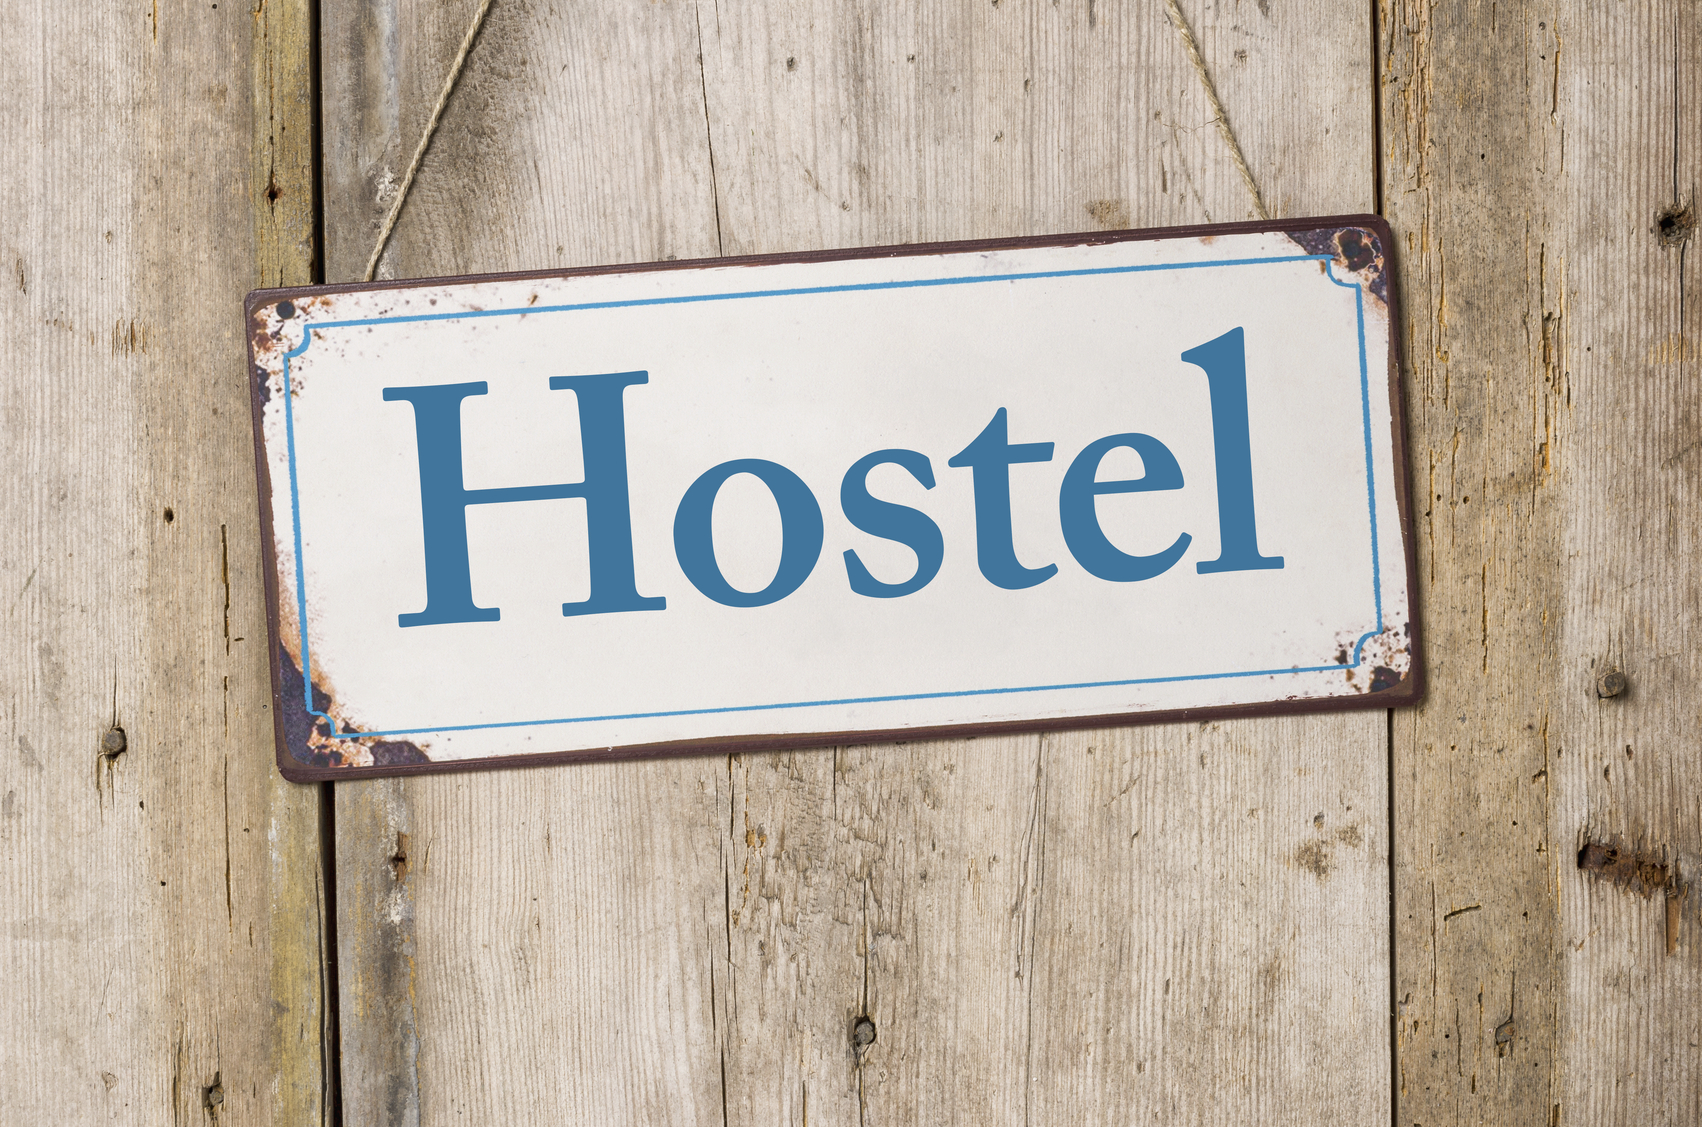 Best hostels 2016: How to choose the best hostel